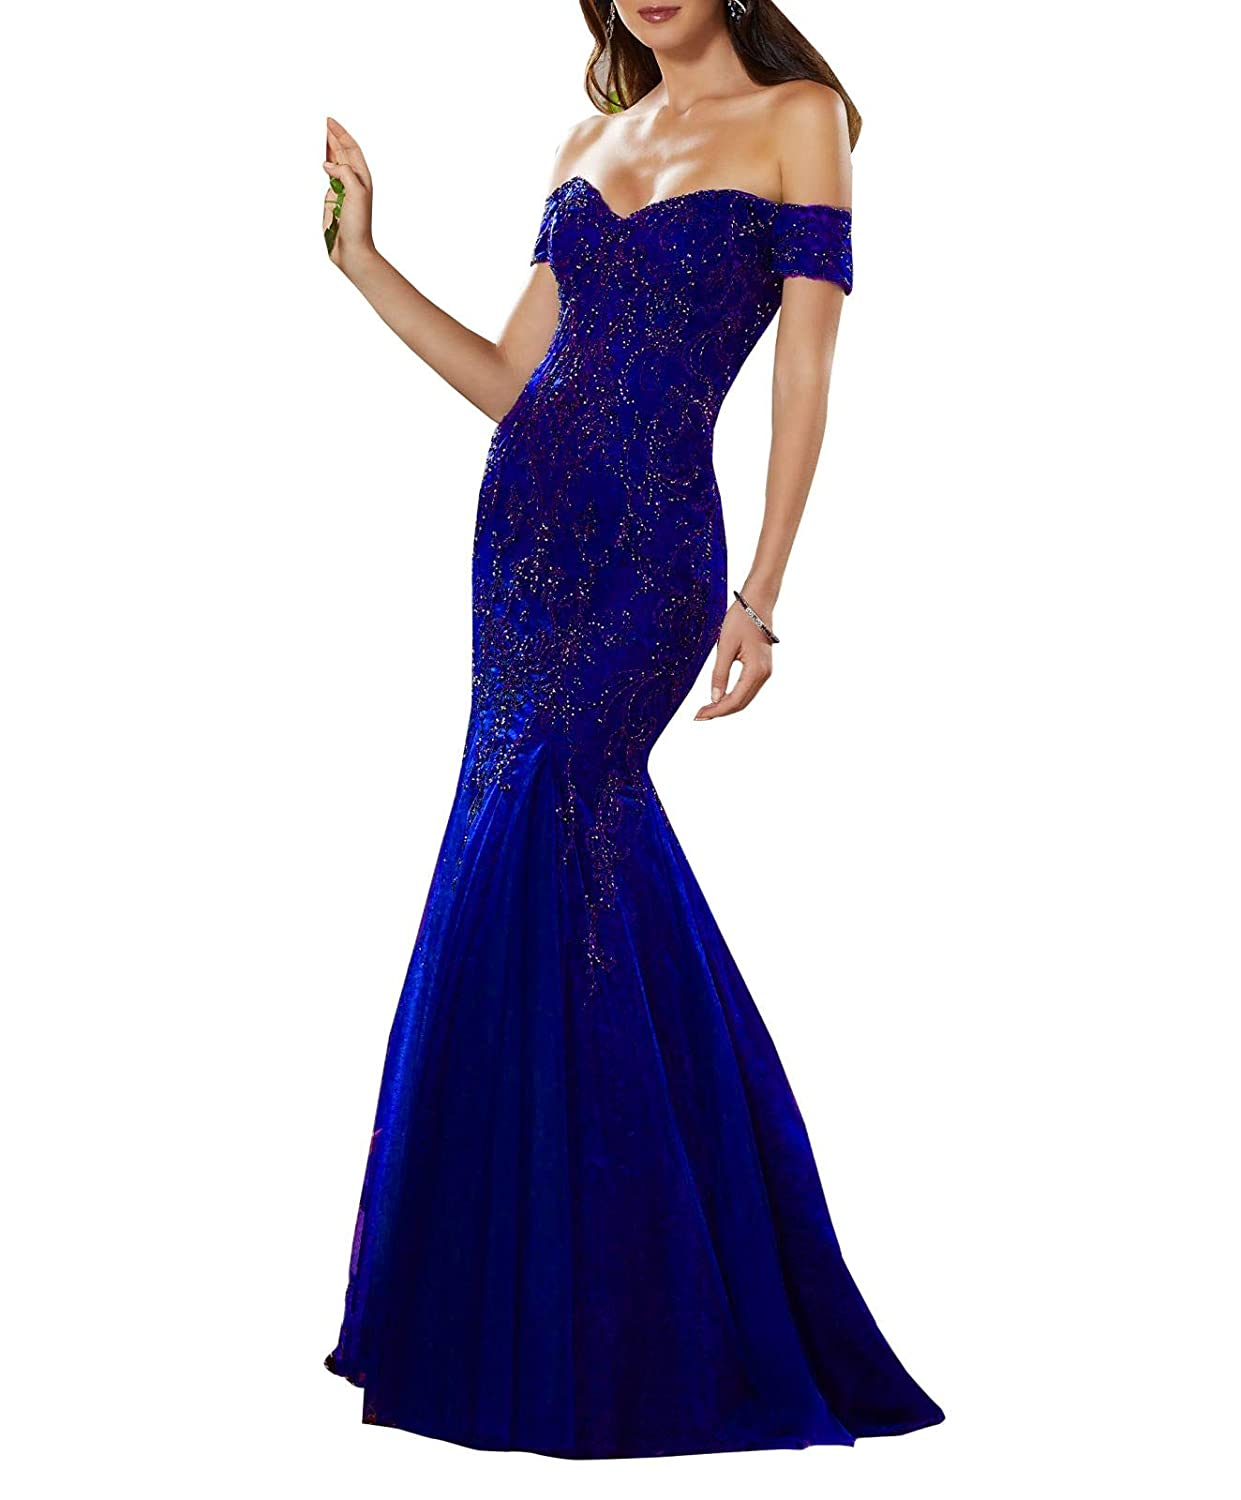 bluee Aishanglina Aline Sexy Off The Shoulder Lace Embroidered Party Dress Prom Gown with Jewelled Beading